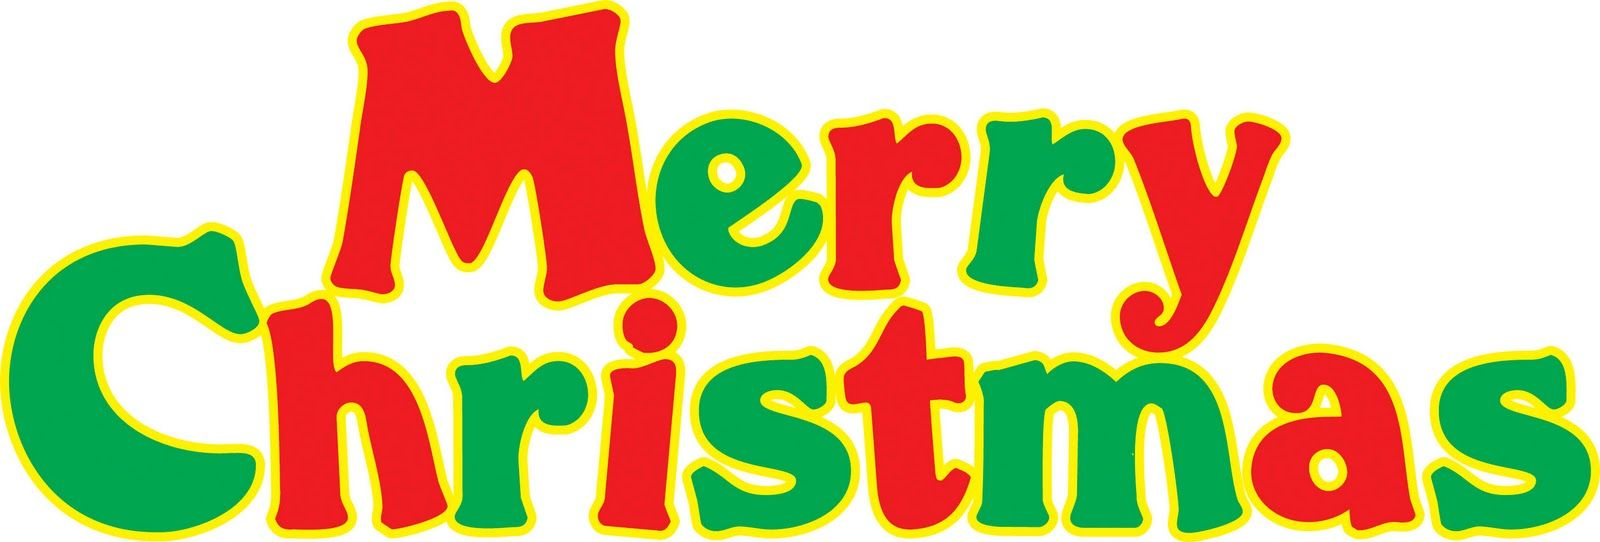 16 Merry Christmas Text Clipart Clipartlook